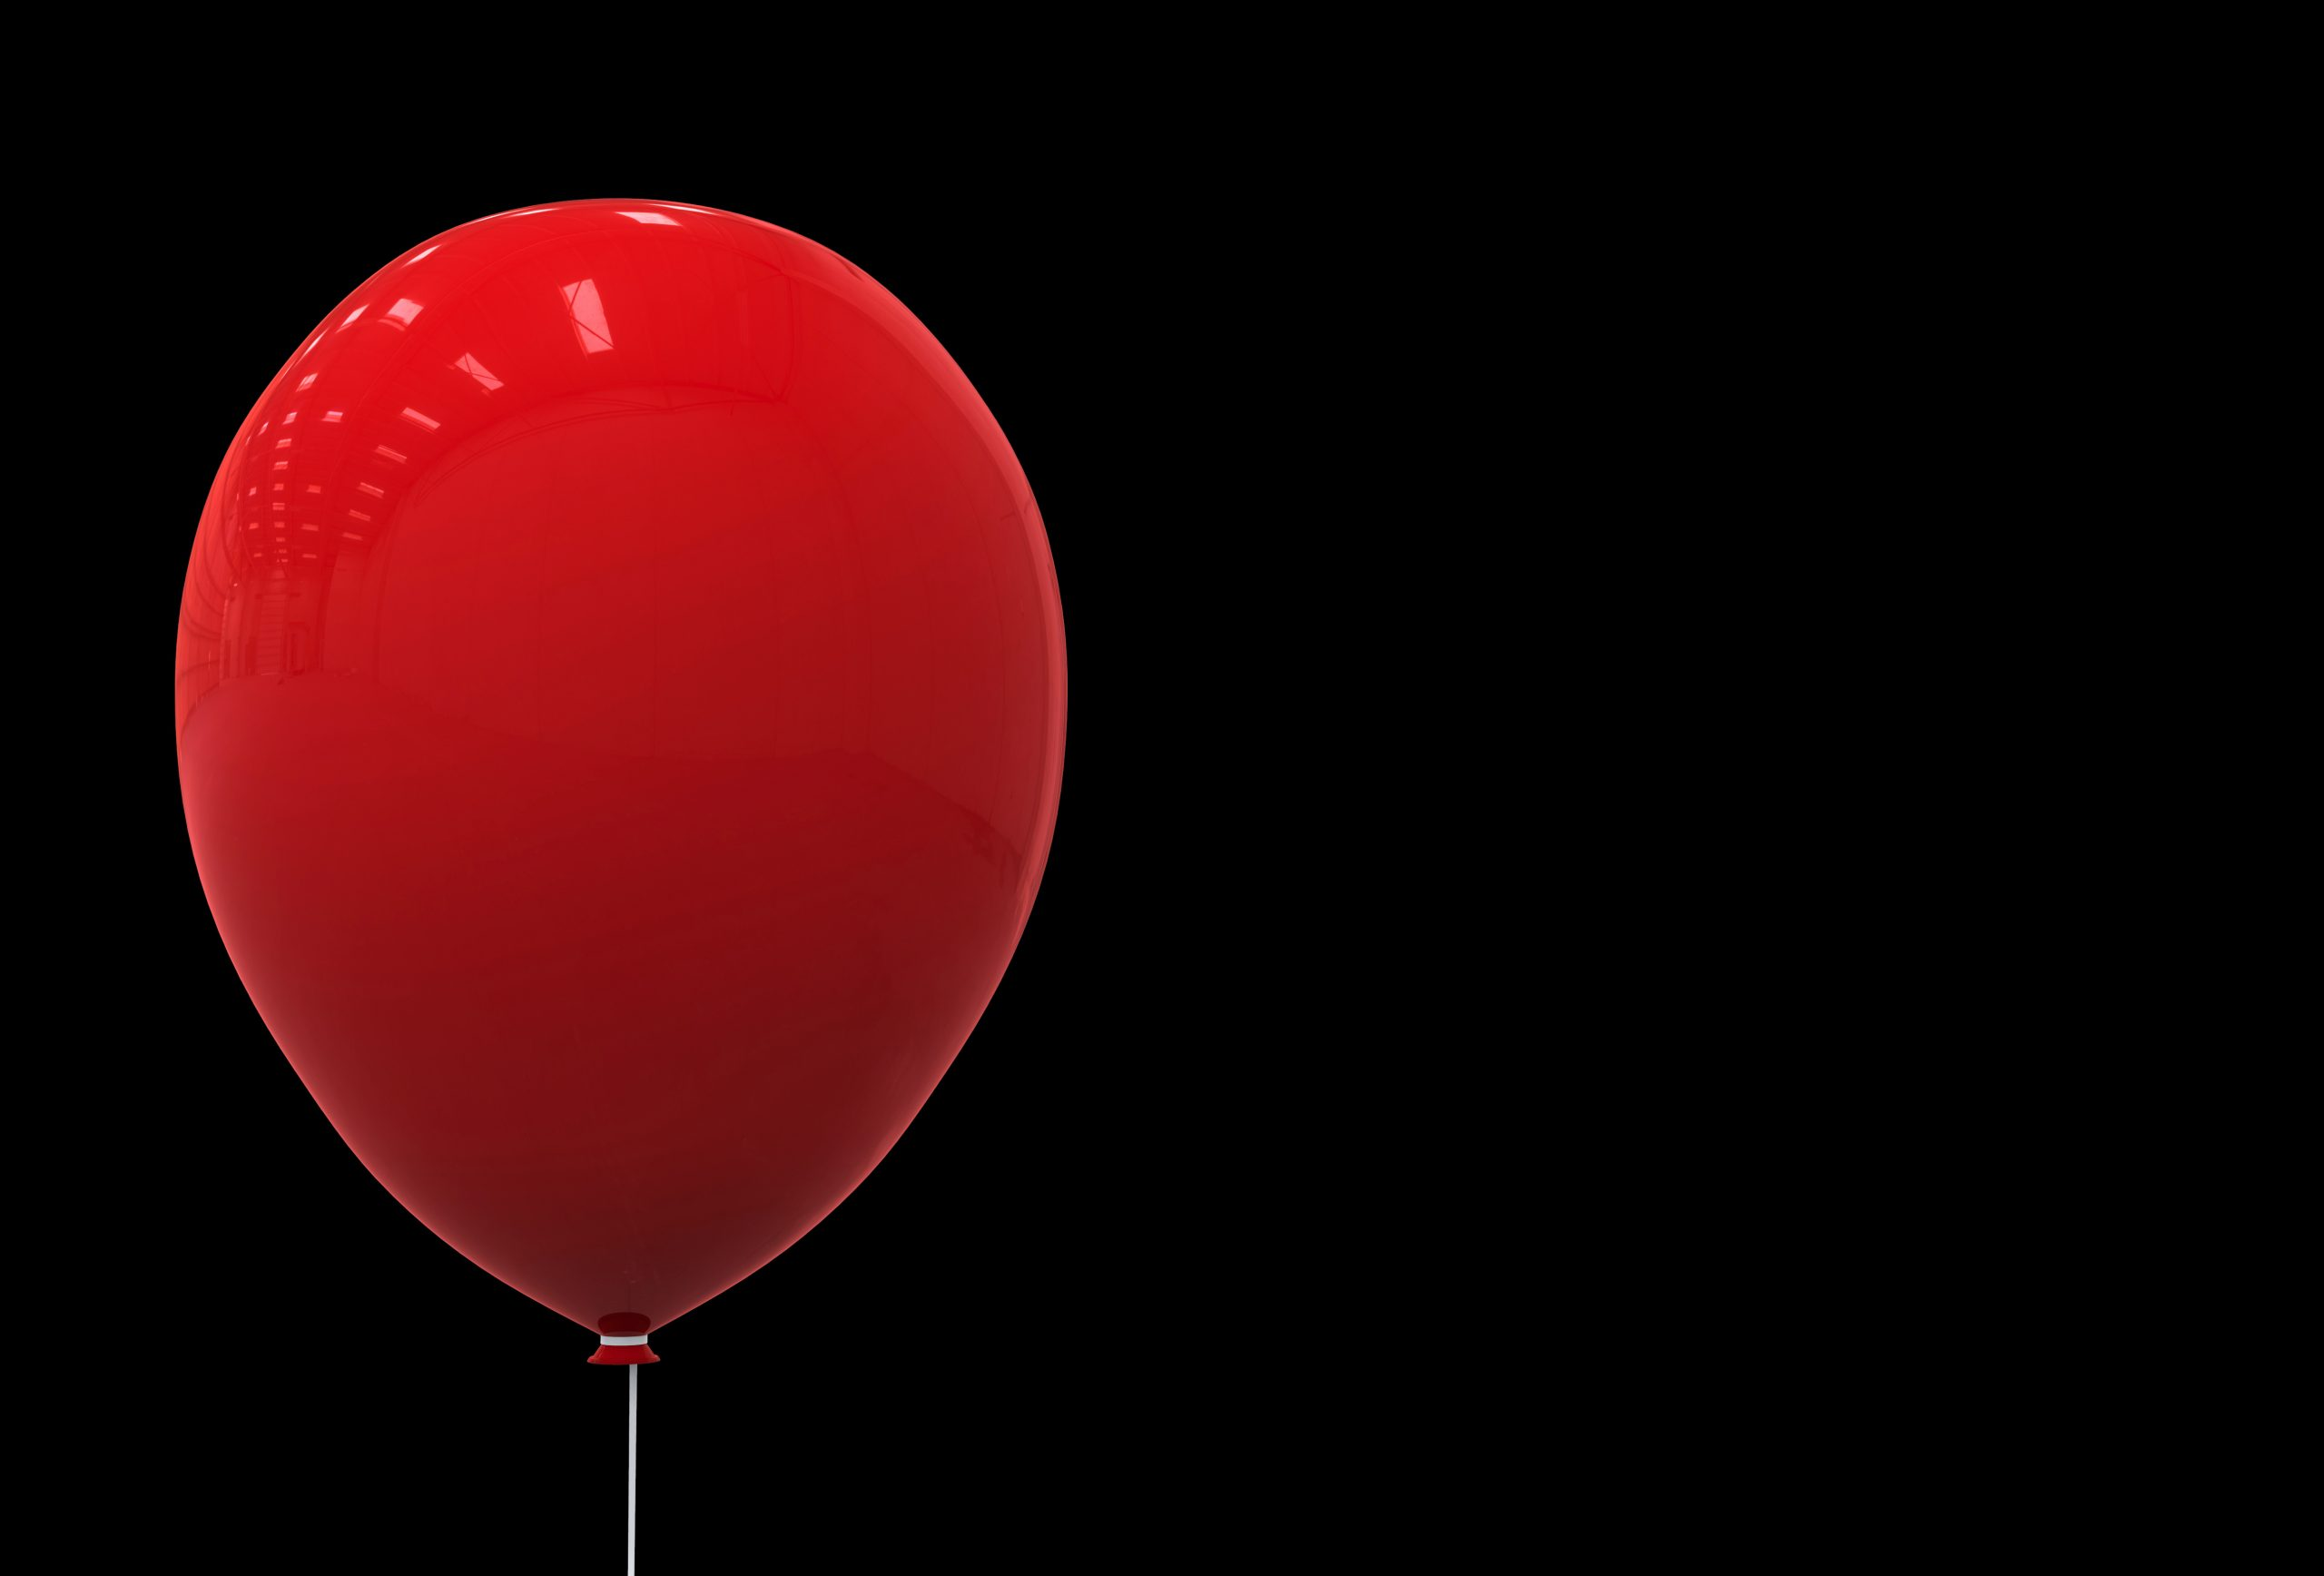 Stephen King It - A Big red balloon has become the symbol of the malevolent creature that the group of protagonists fight